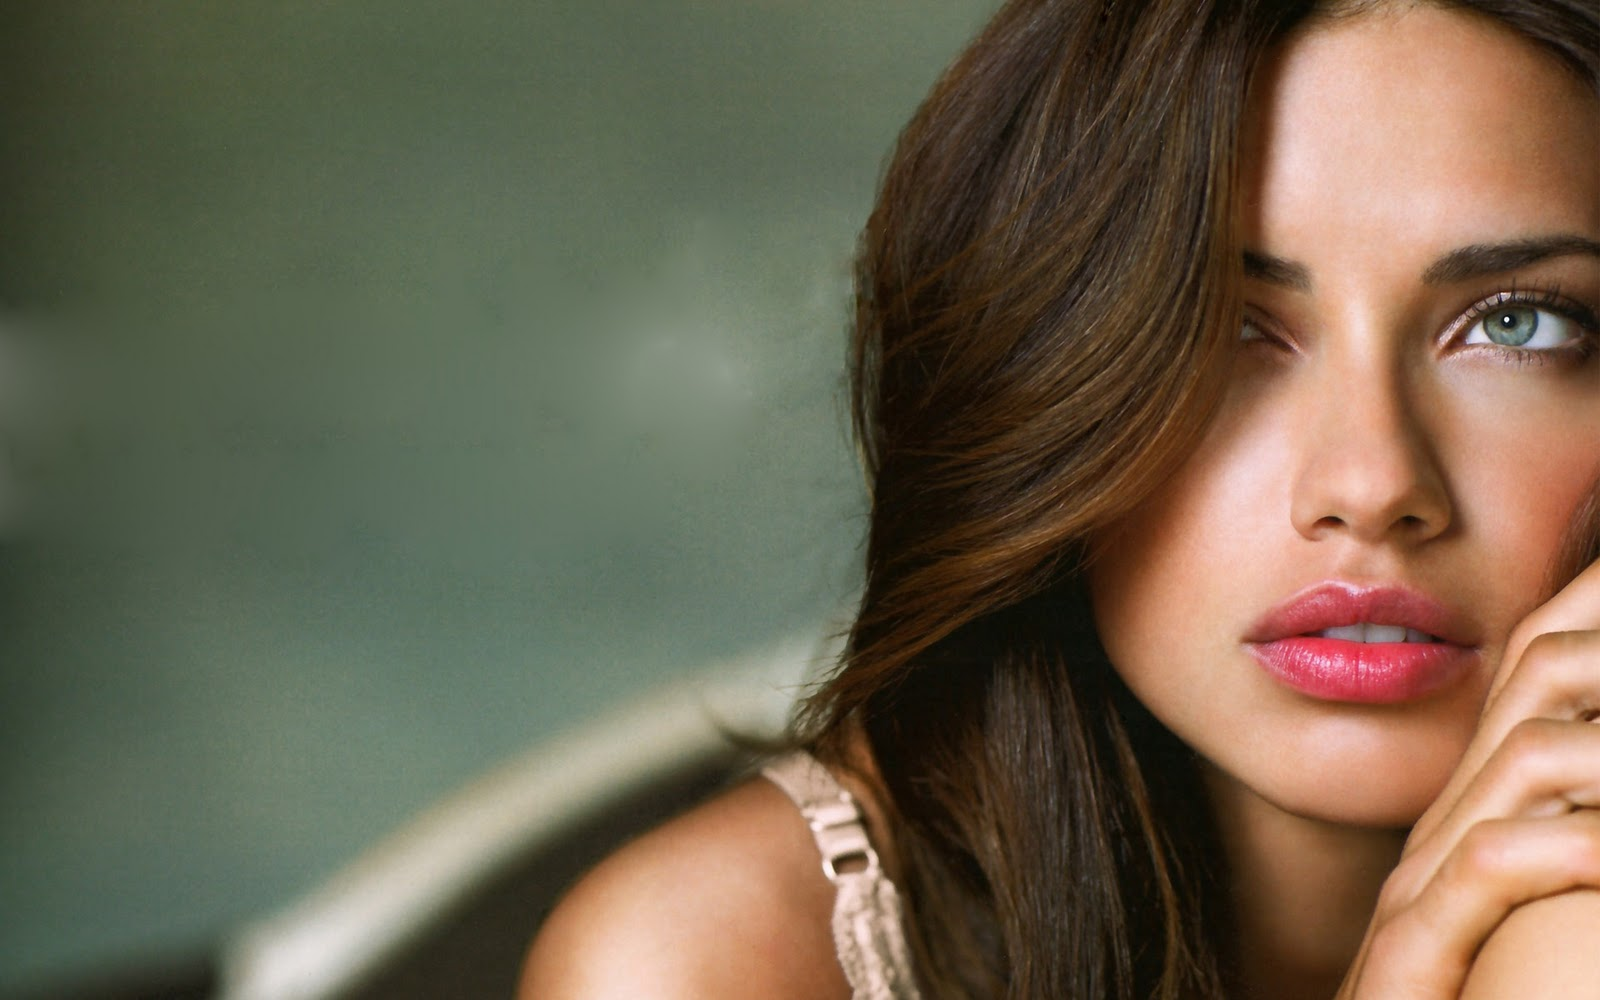 adriana lima hot wallpapers 2012 - scrappy gifts